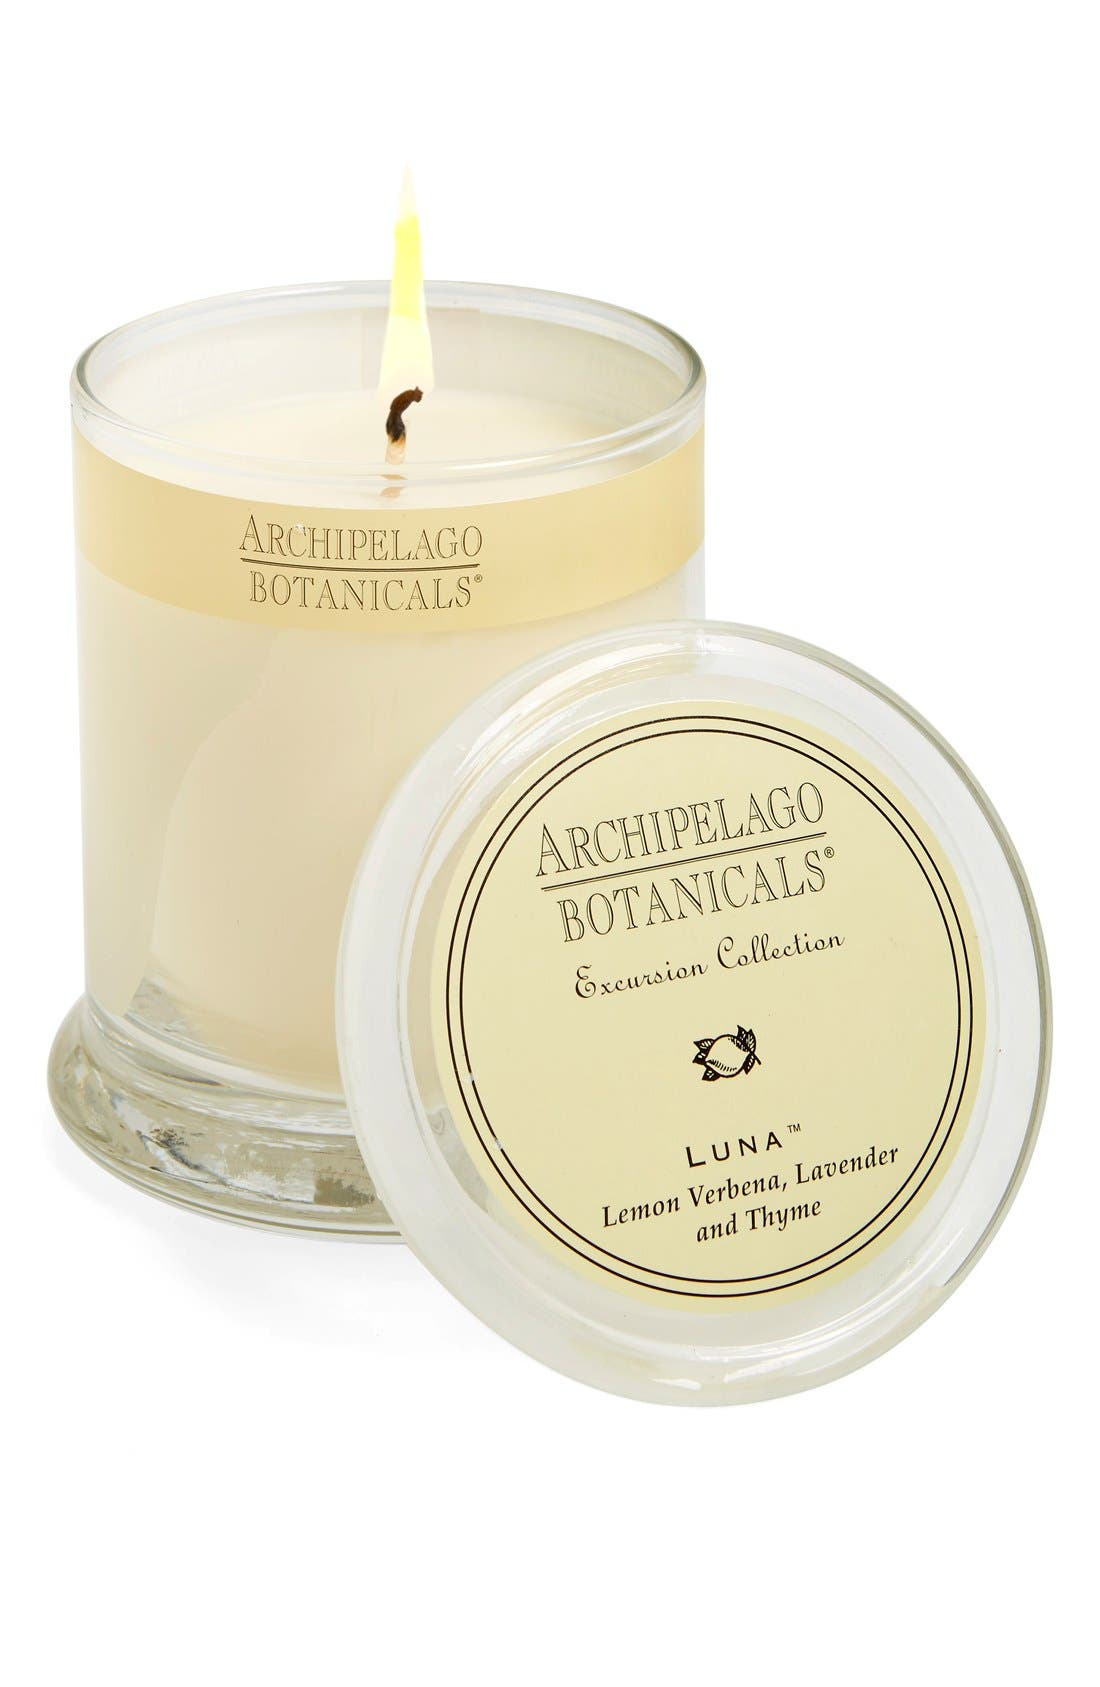 ARCHIPELAGO BOTANICALS 'Excursion' Glass Jar Candle